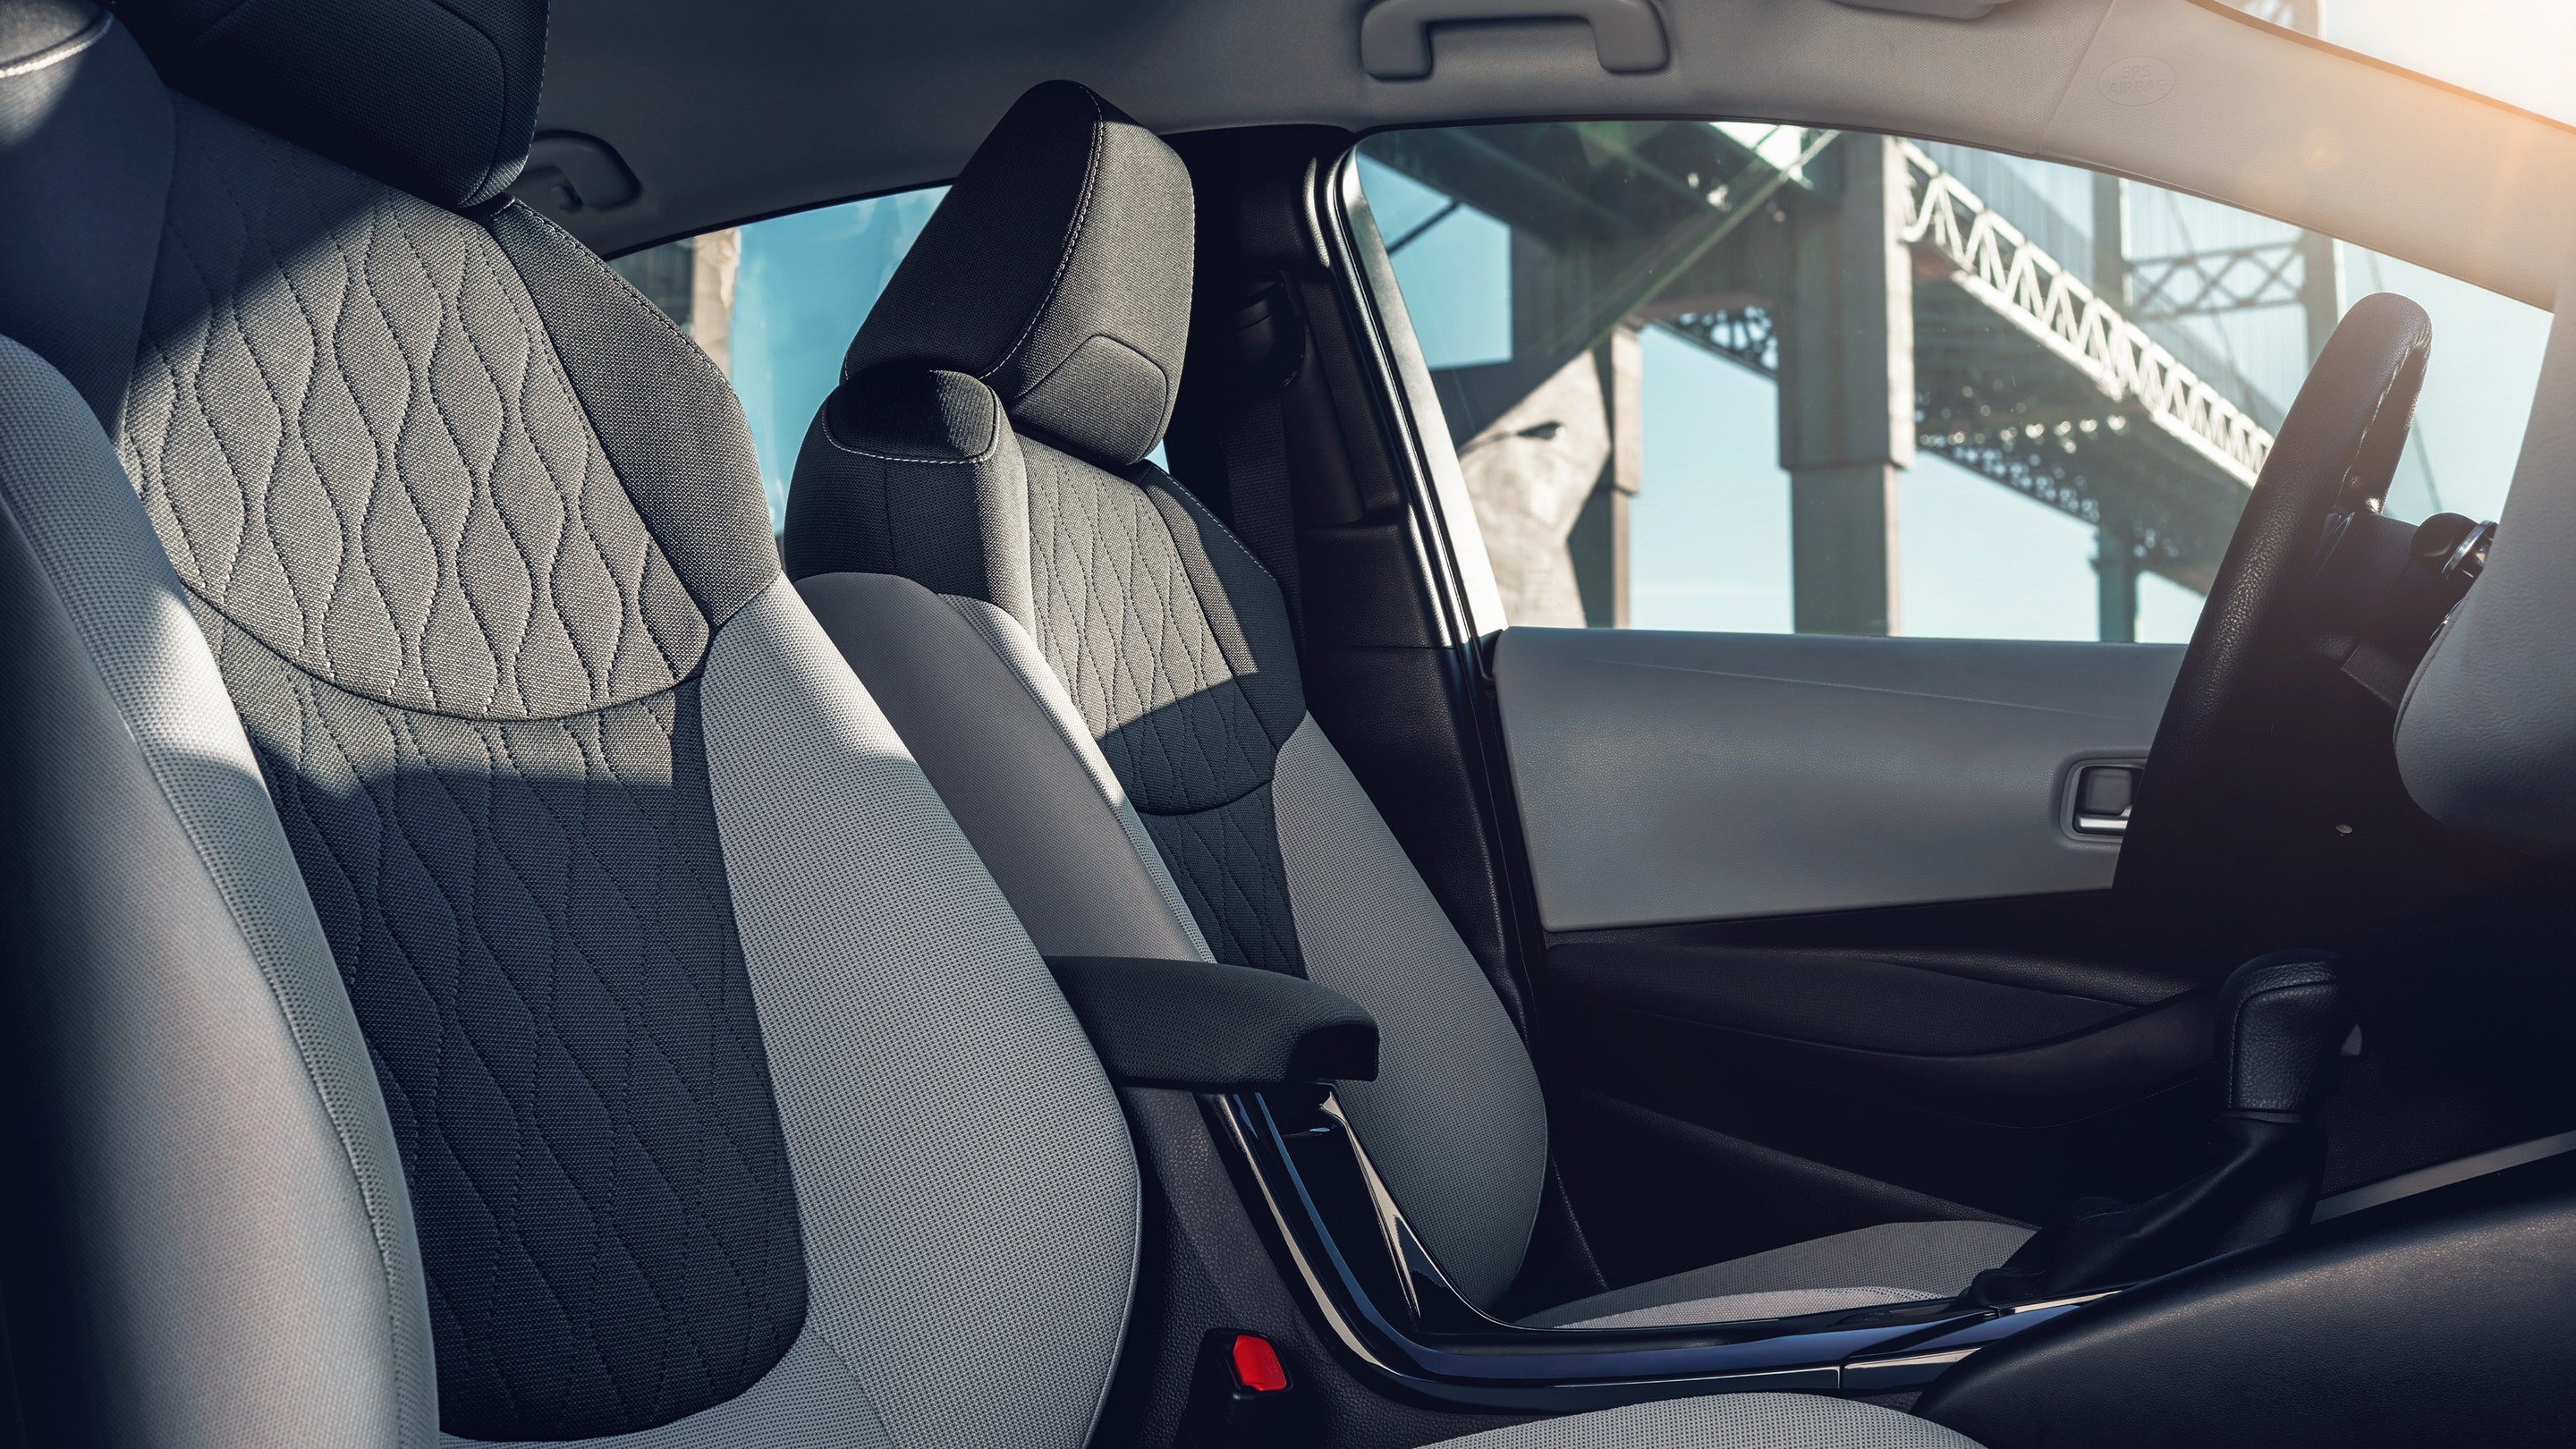 Enjoy Every Drive in the Corolla Hybrid in Comfort!